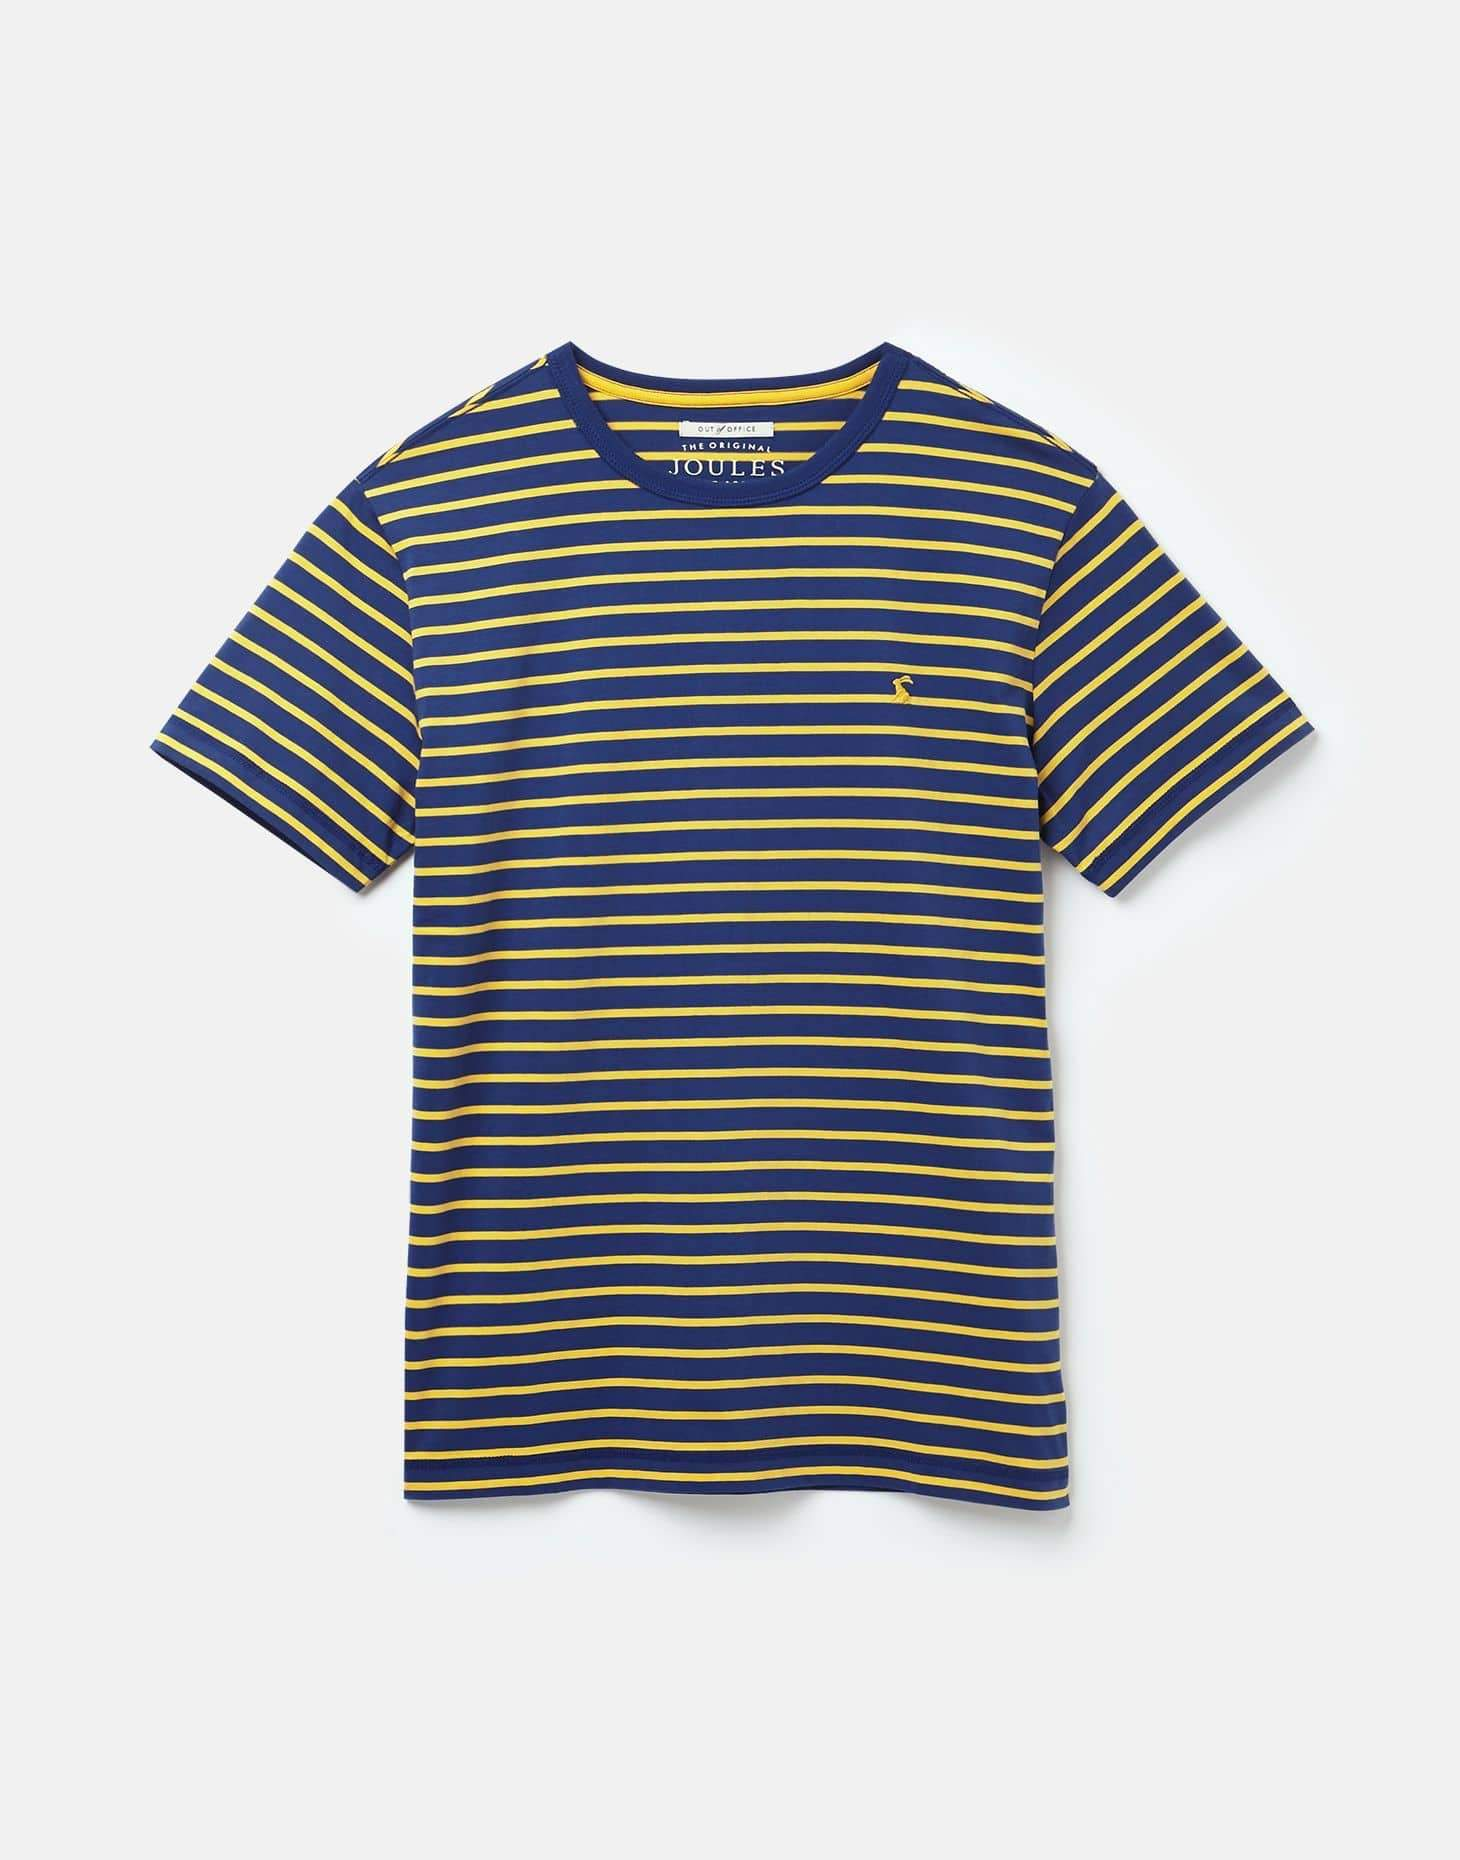 Joules Boathouse Tee Blue Yellow Stripe férfi t-shirt